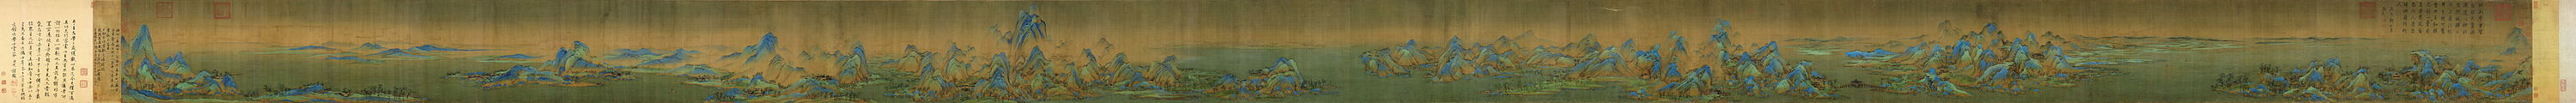 Wang_Ximeng._A_Thousand_Li_of_Rivers_and_Mountains._(Complete,_51,3x1191,5_cm)._1113._Palace_museum,_Beijing